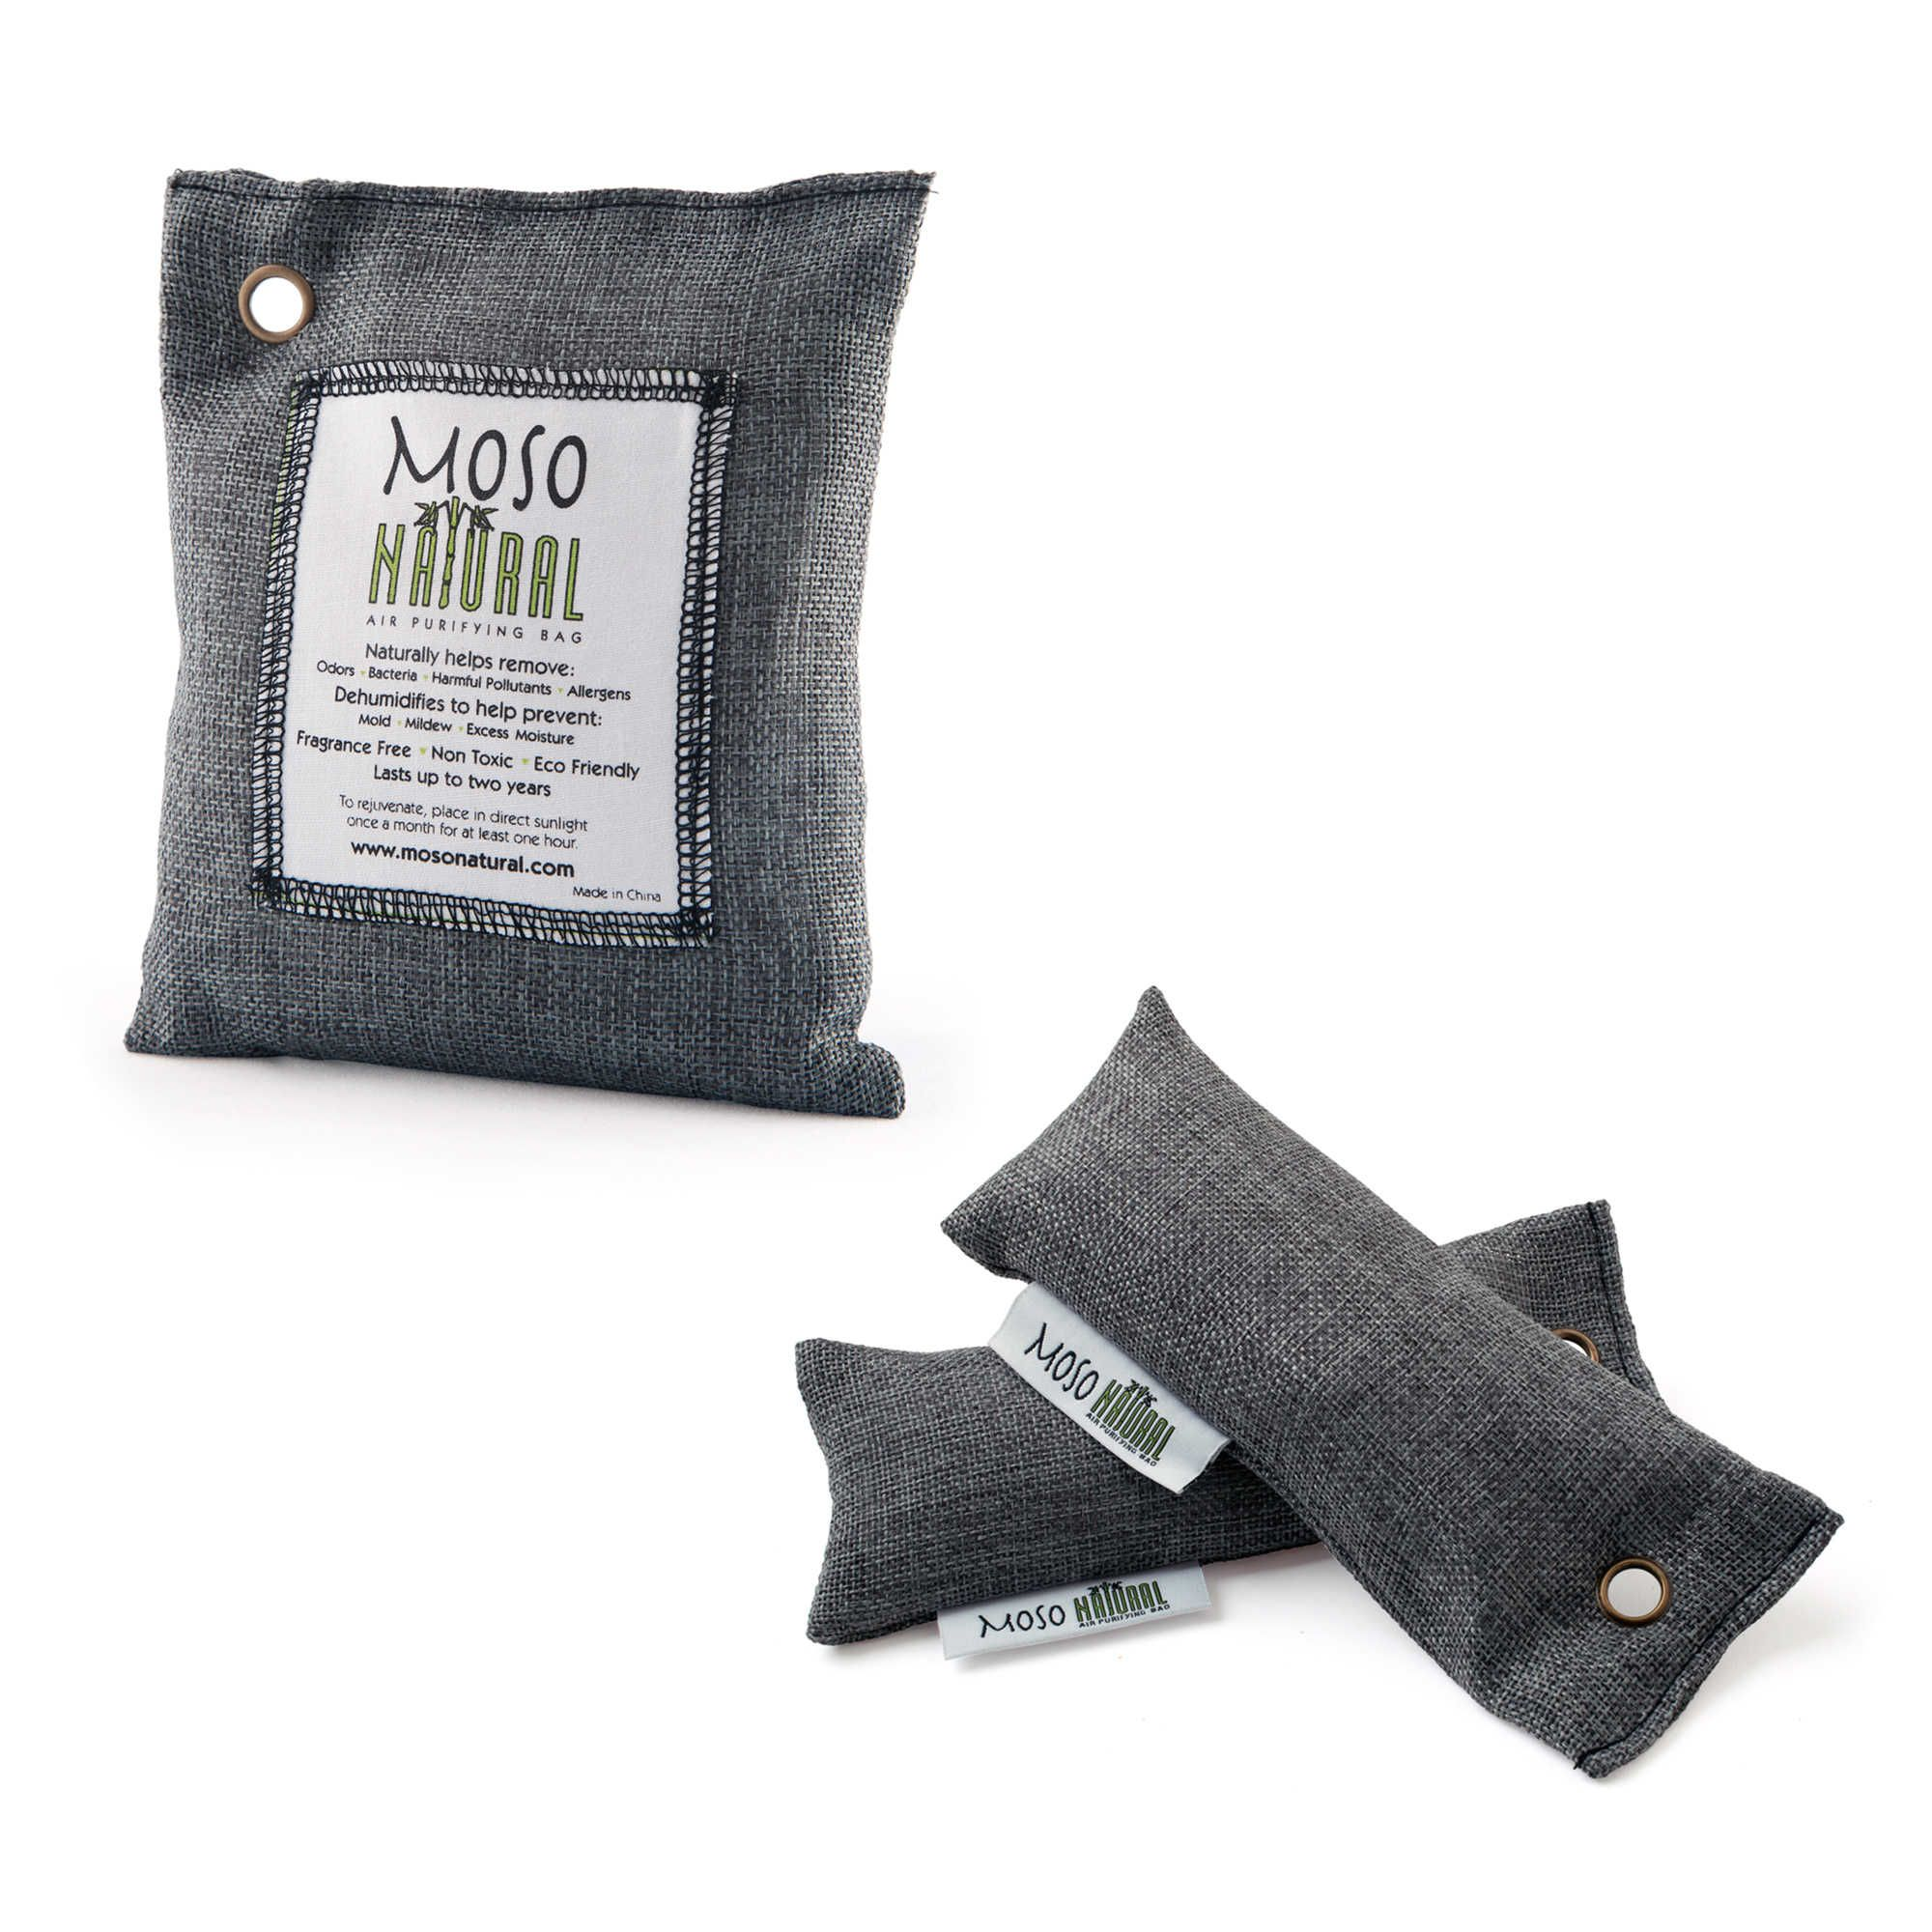 Moso Natural Air Purifying Bag not afraid to sweat